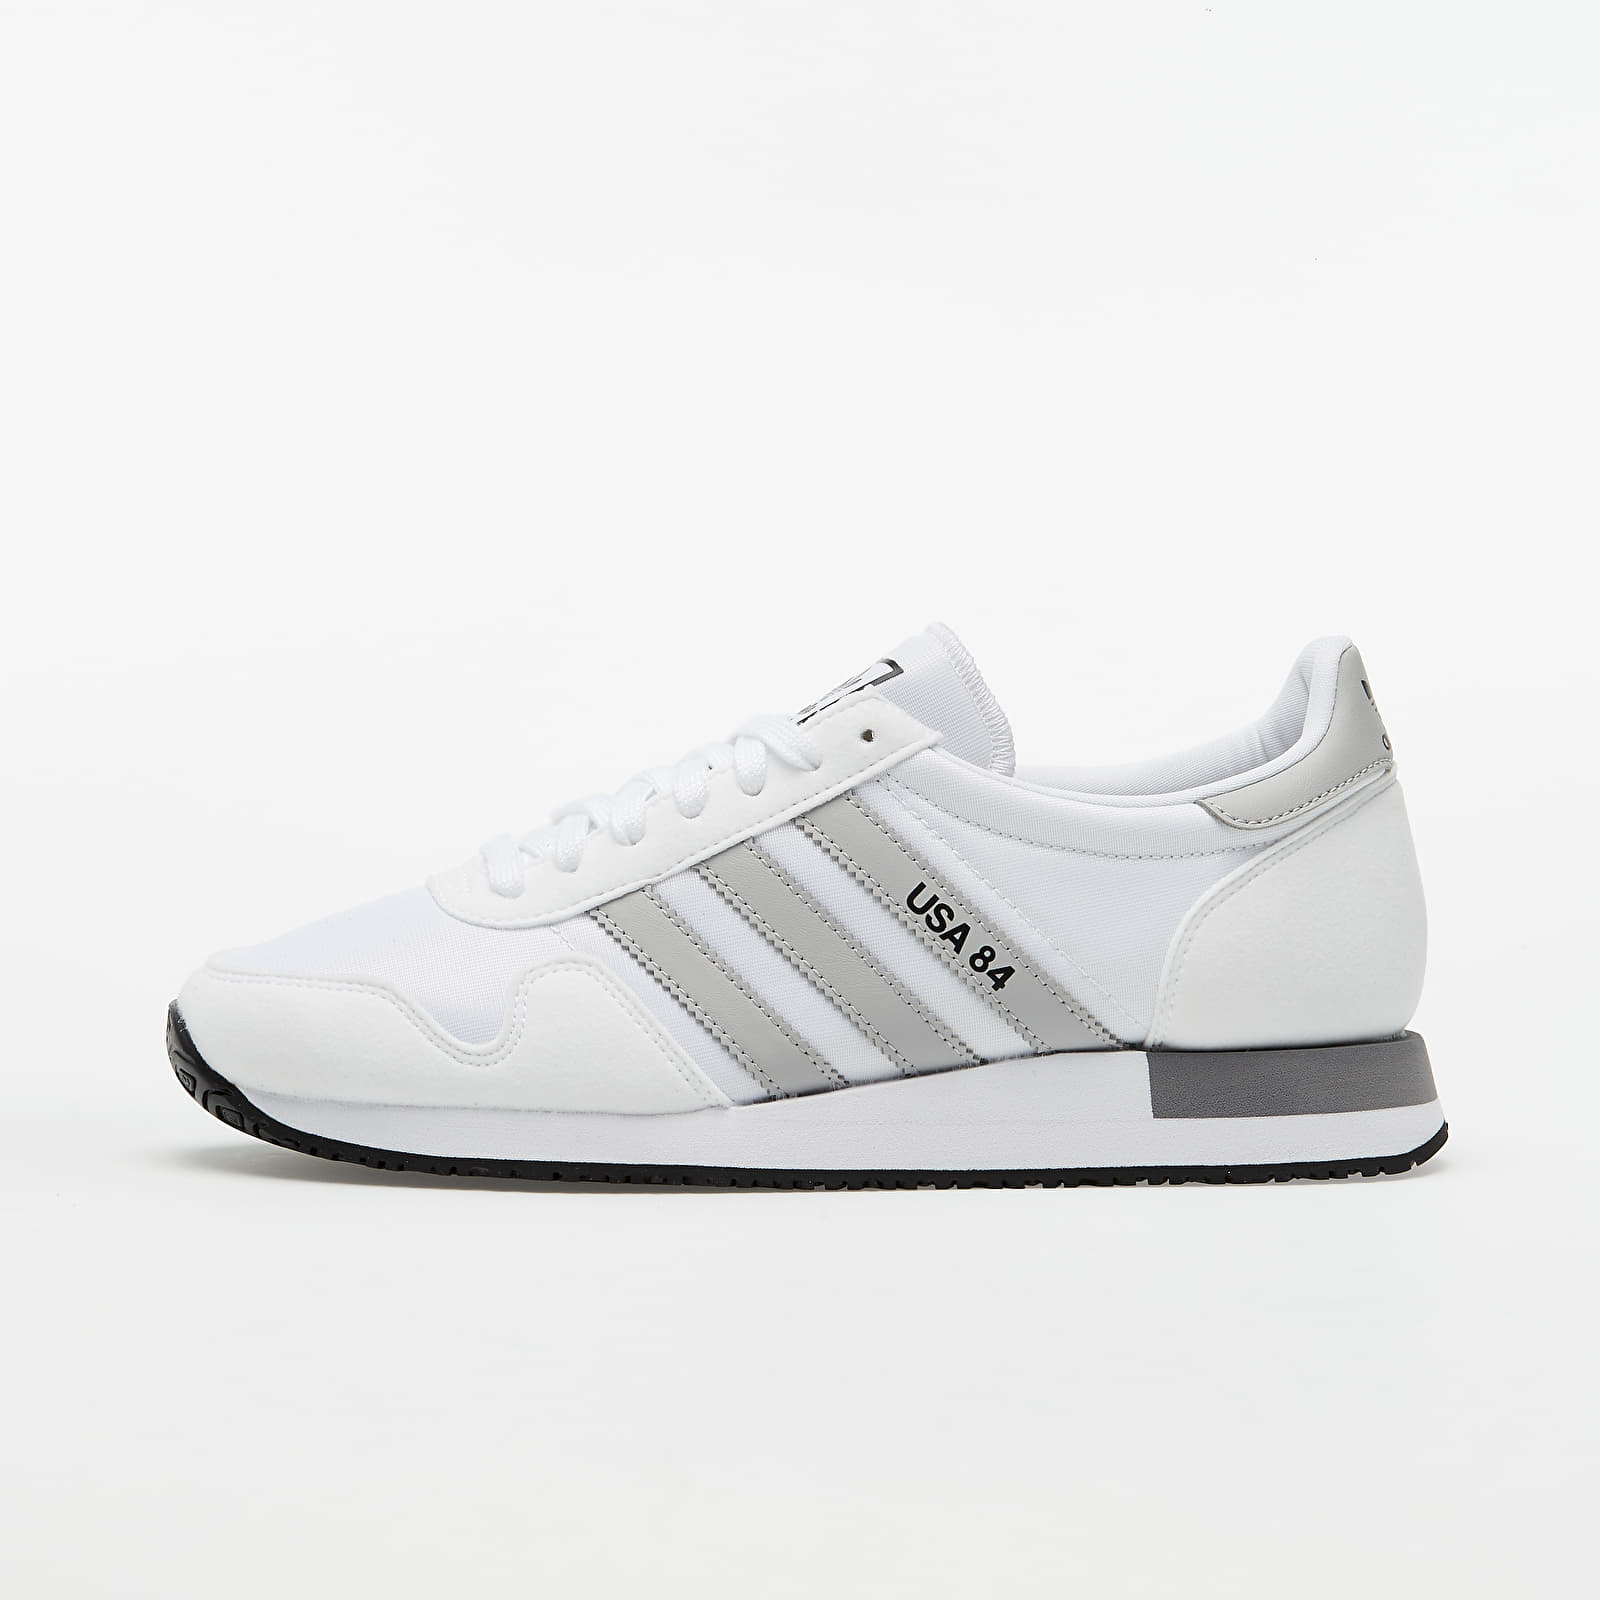 adidas Usa 84 Ftw White/ Ftw White/ Grey Three FV2049